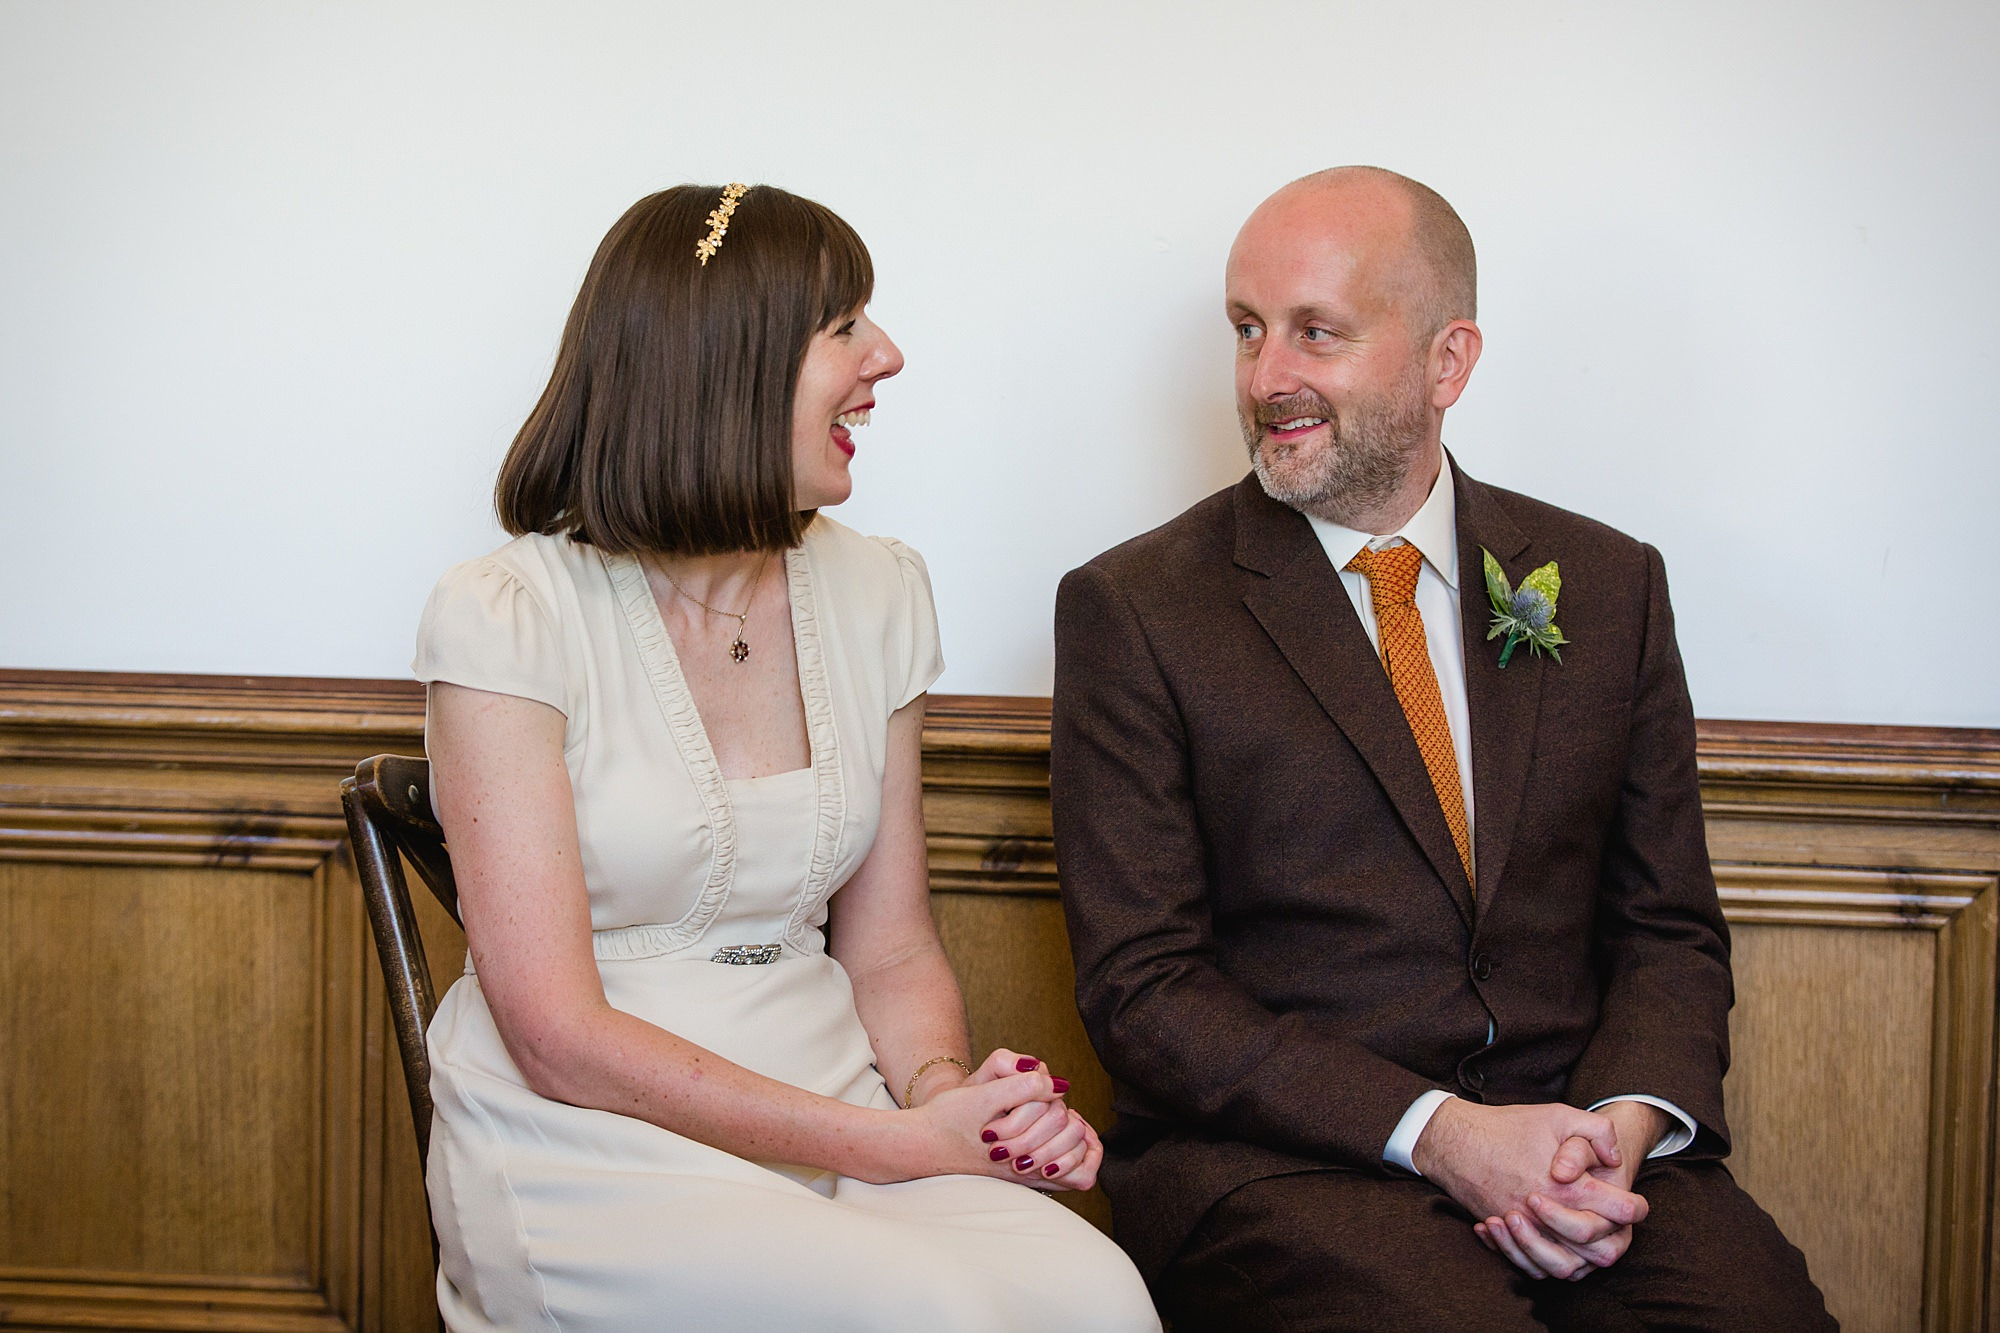 Clapton Country Club wedding photography bride and groom smile during humanist ceremony